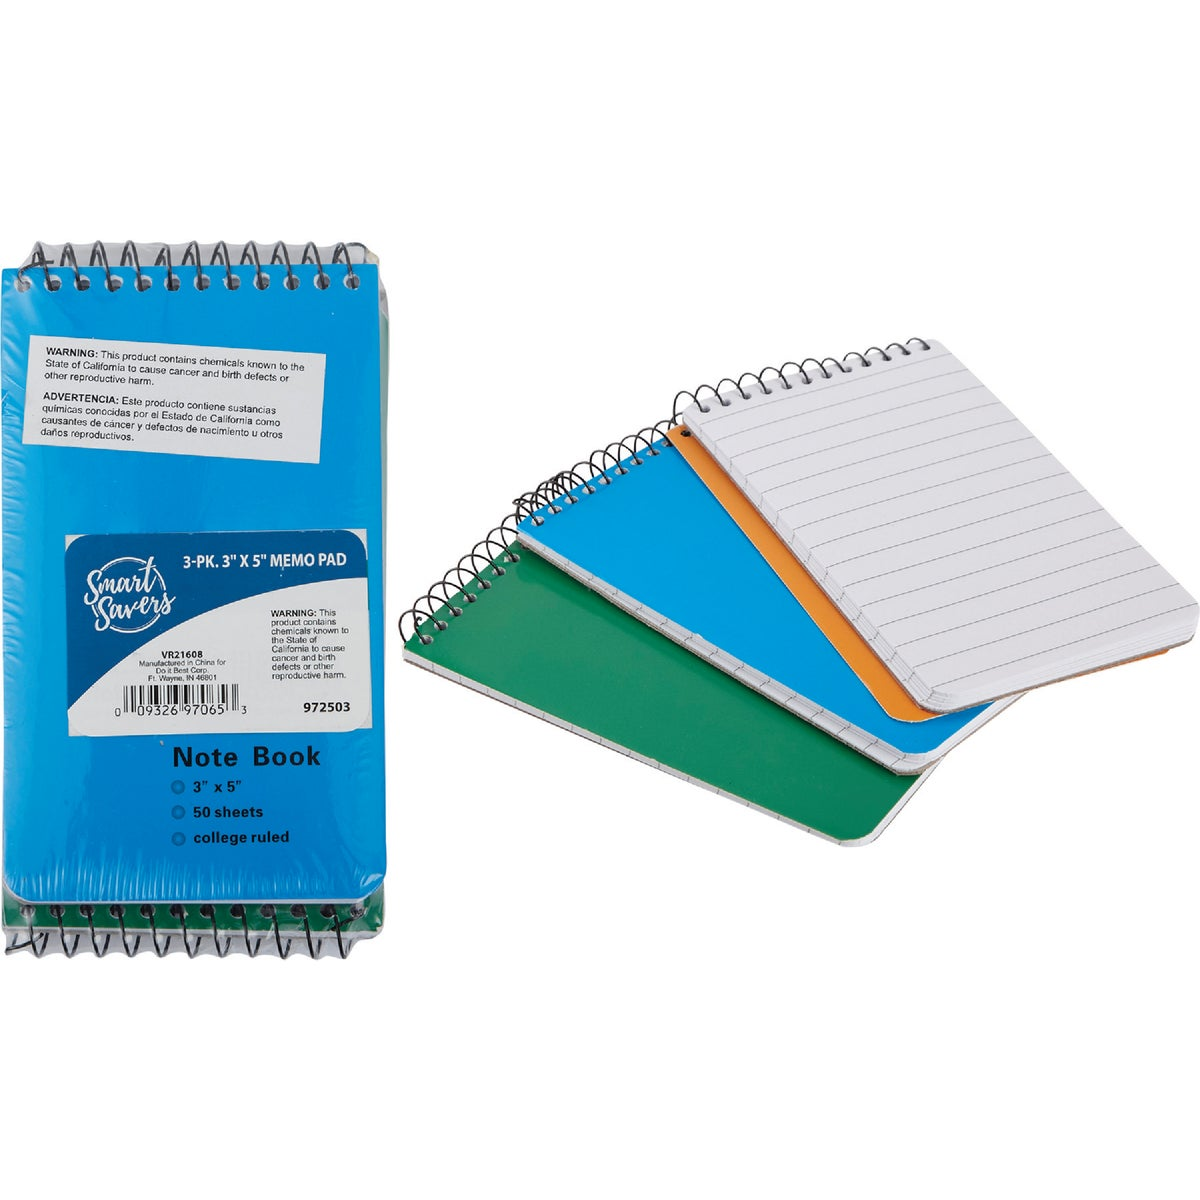 3PK 3X5 MEMO PAD - 10159 by Do it Best